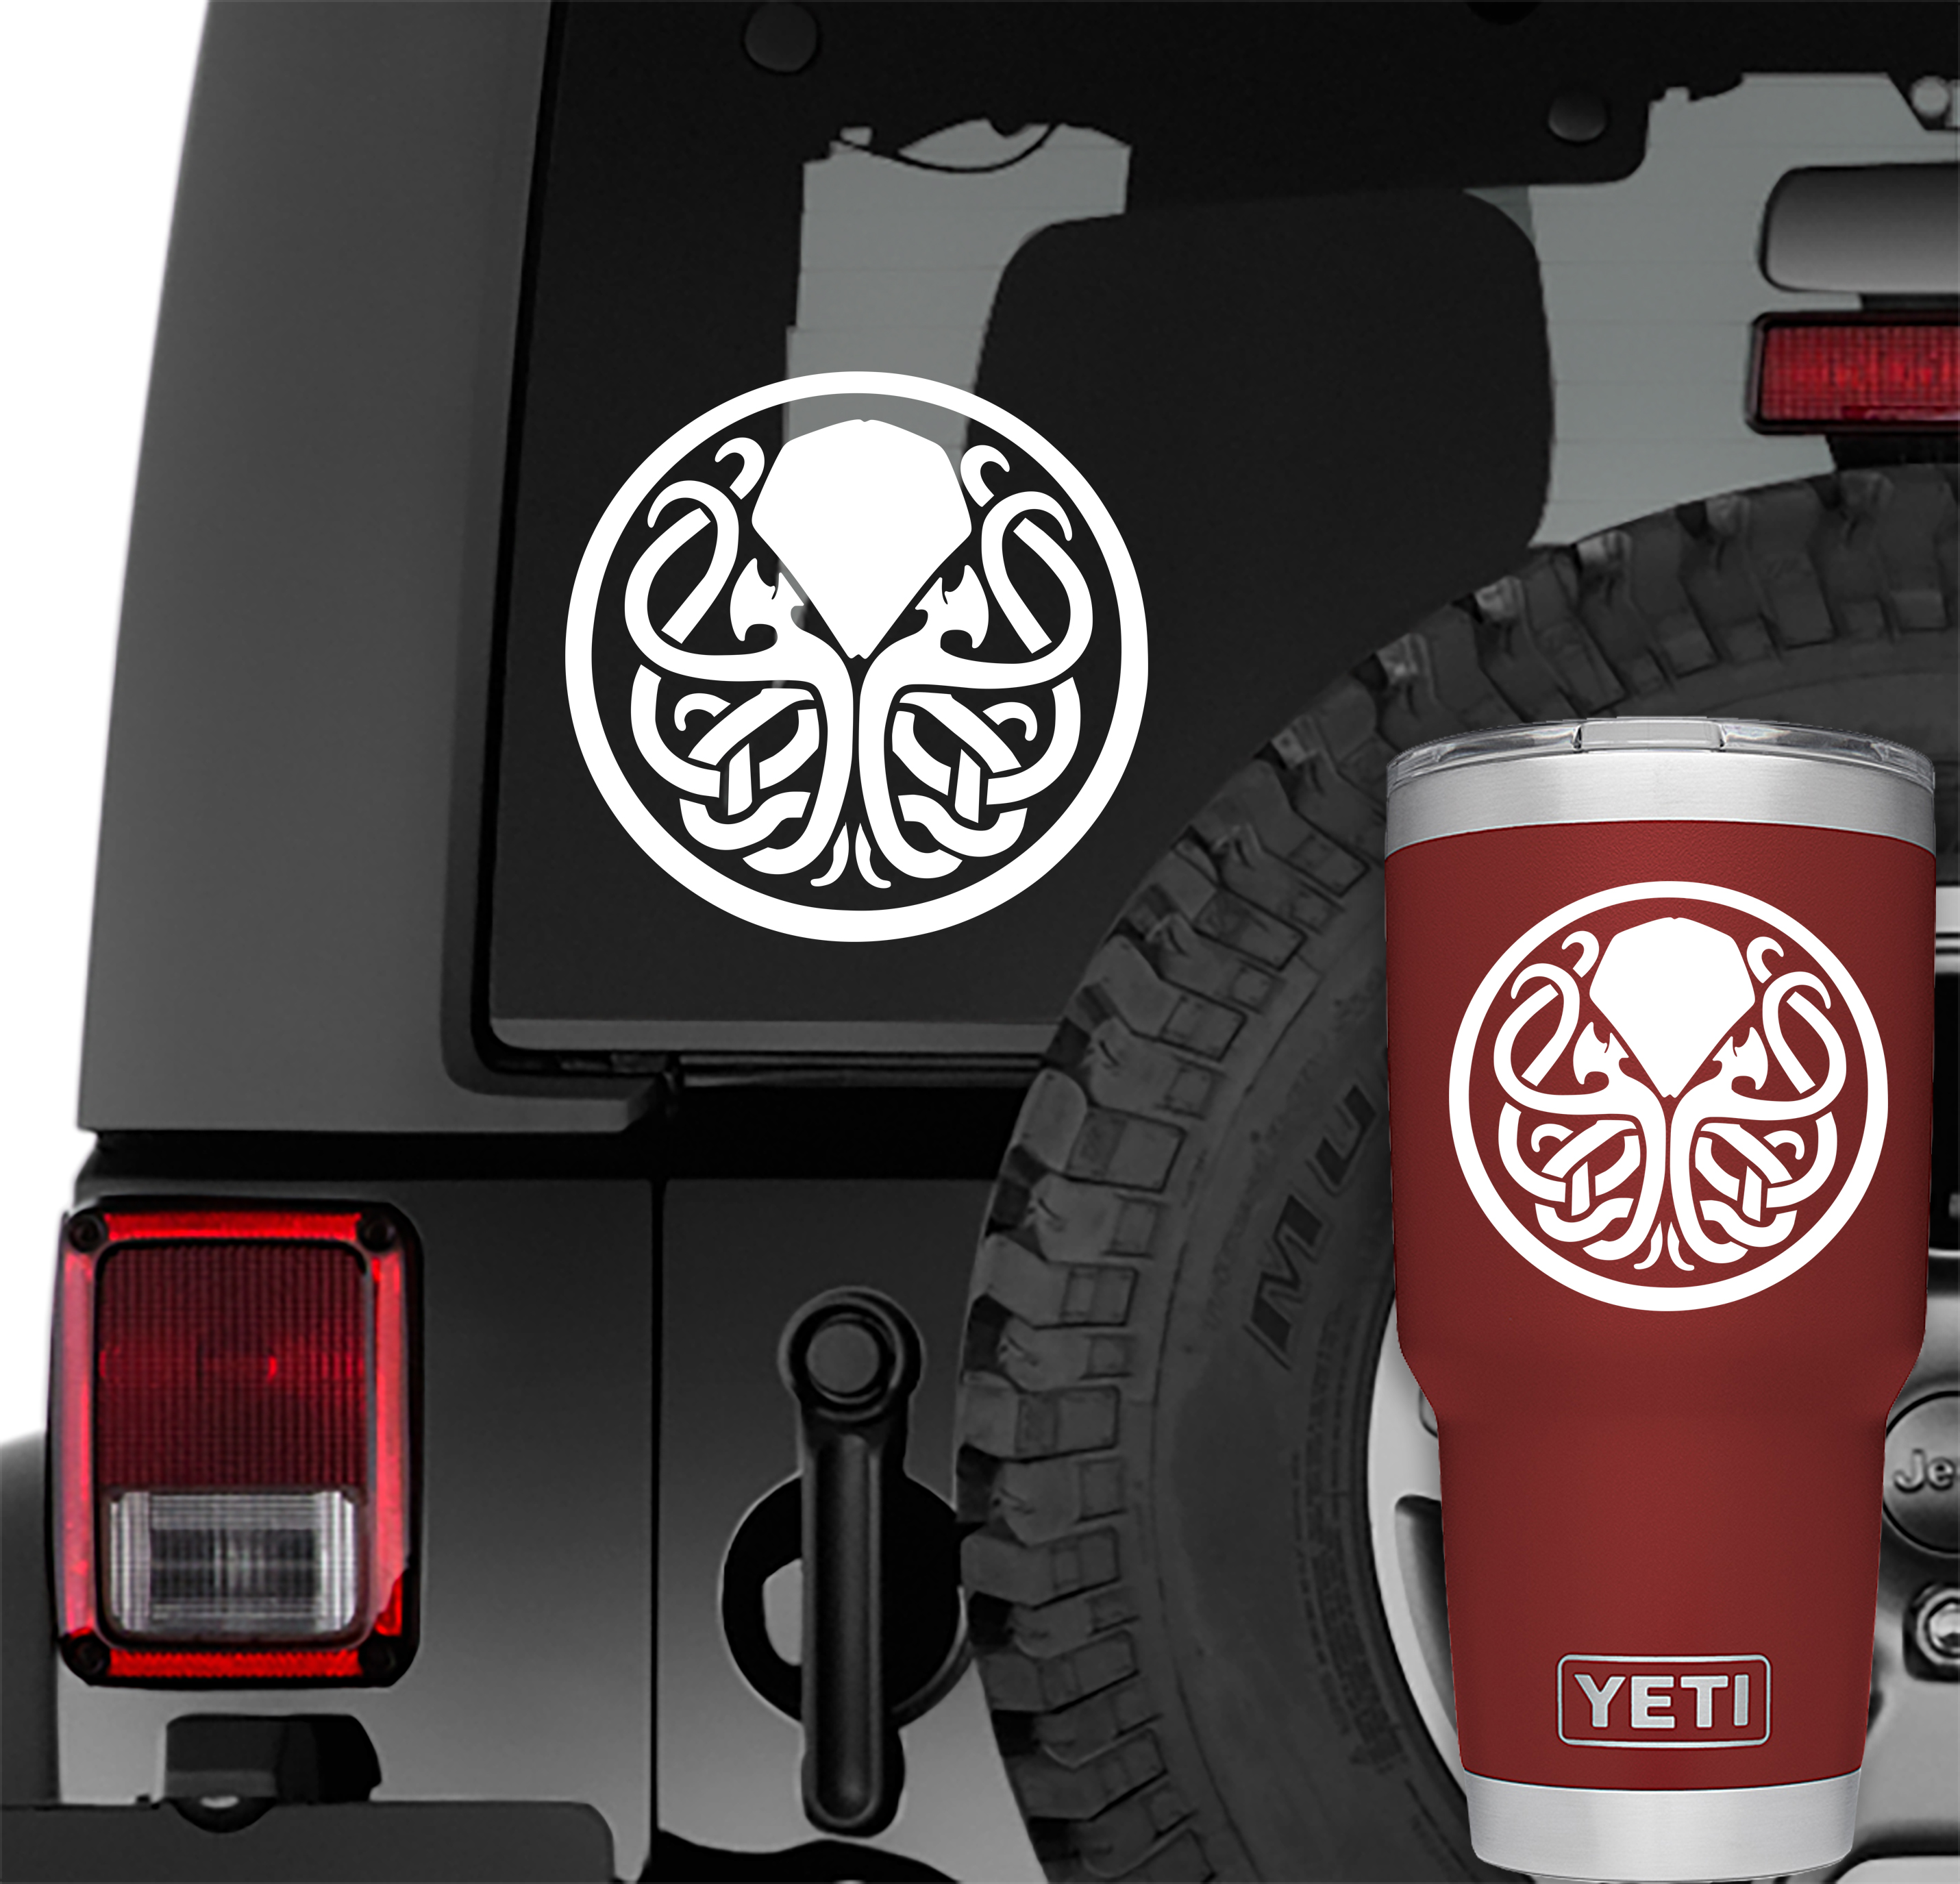 Cthulhu Celtic Knot Vinyl Decal | Cthulhu Celtic Knot Tumbler Decals